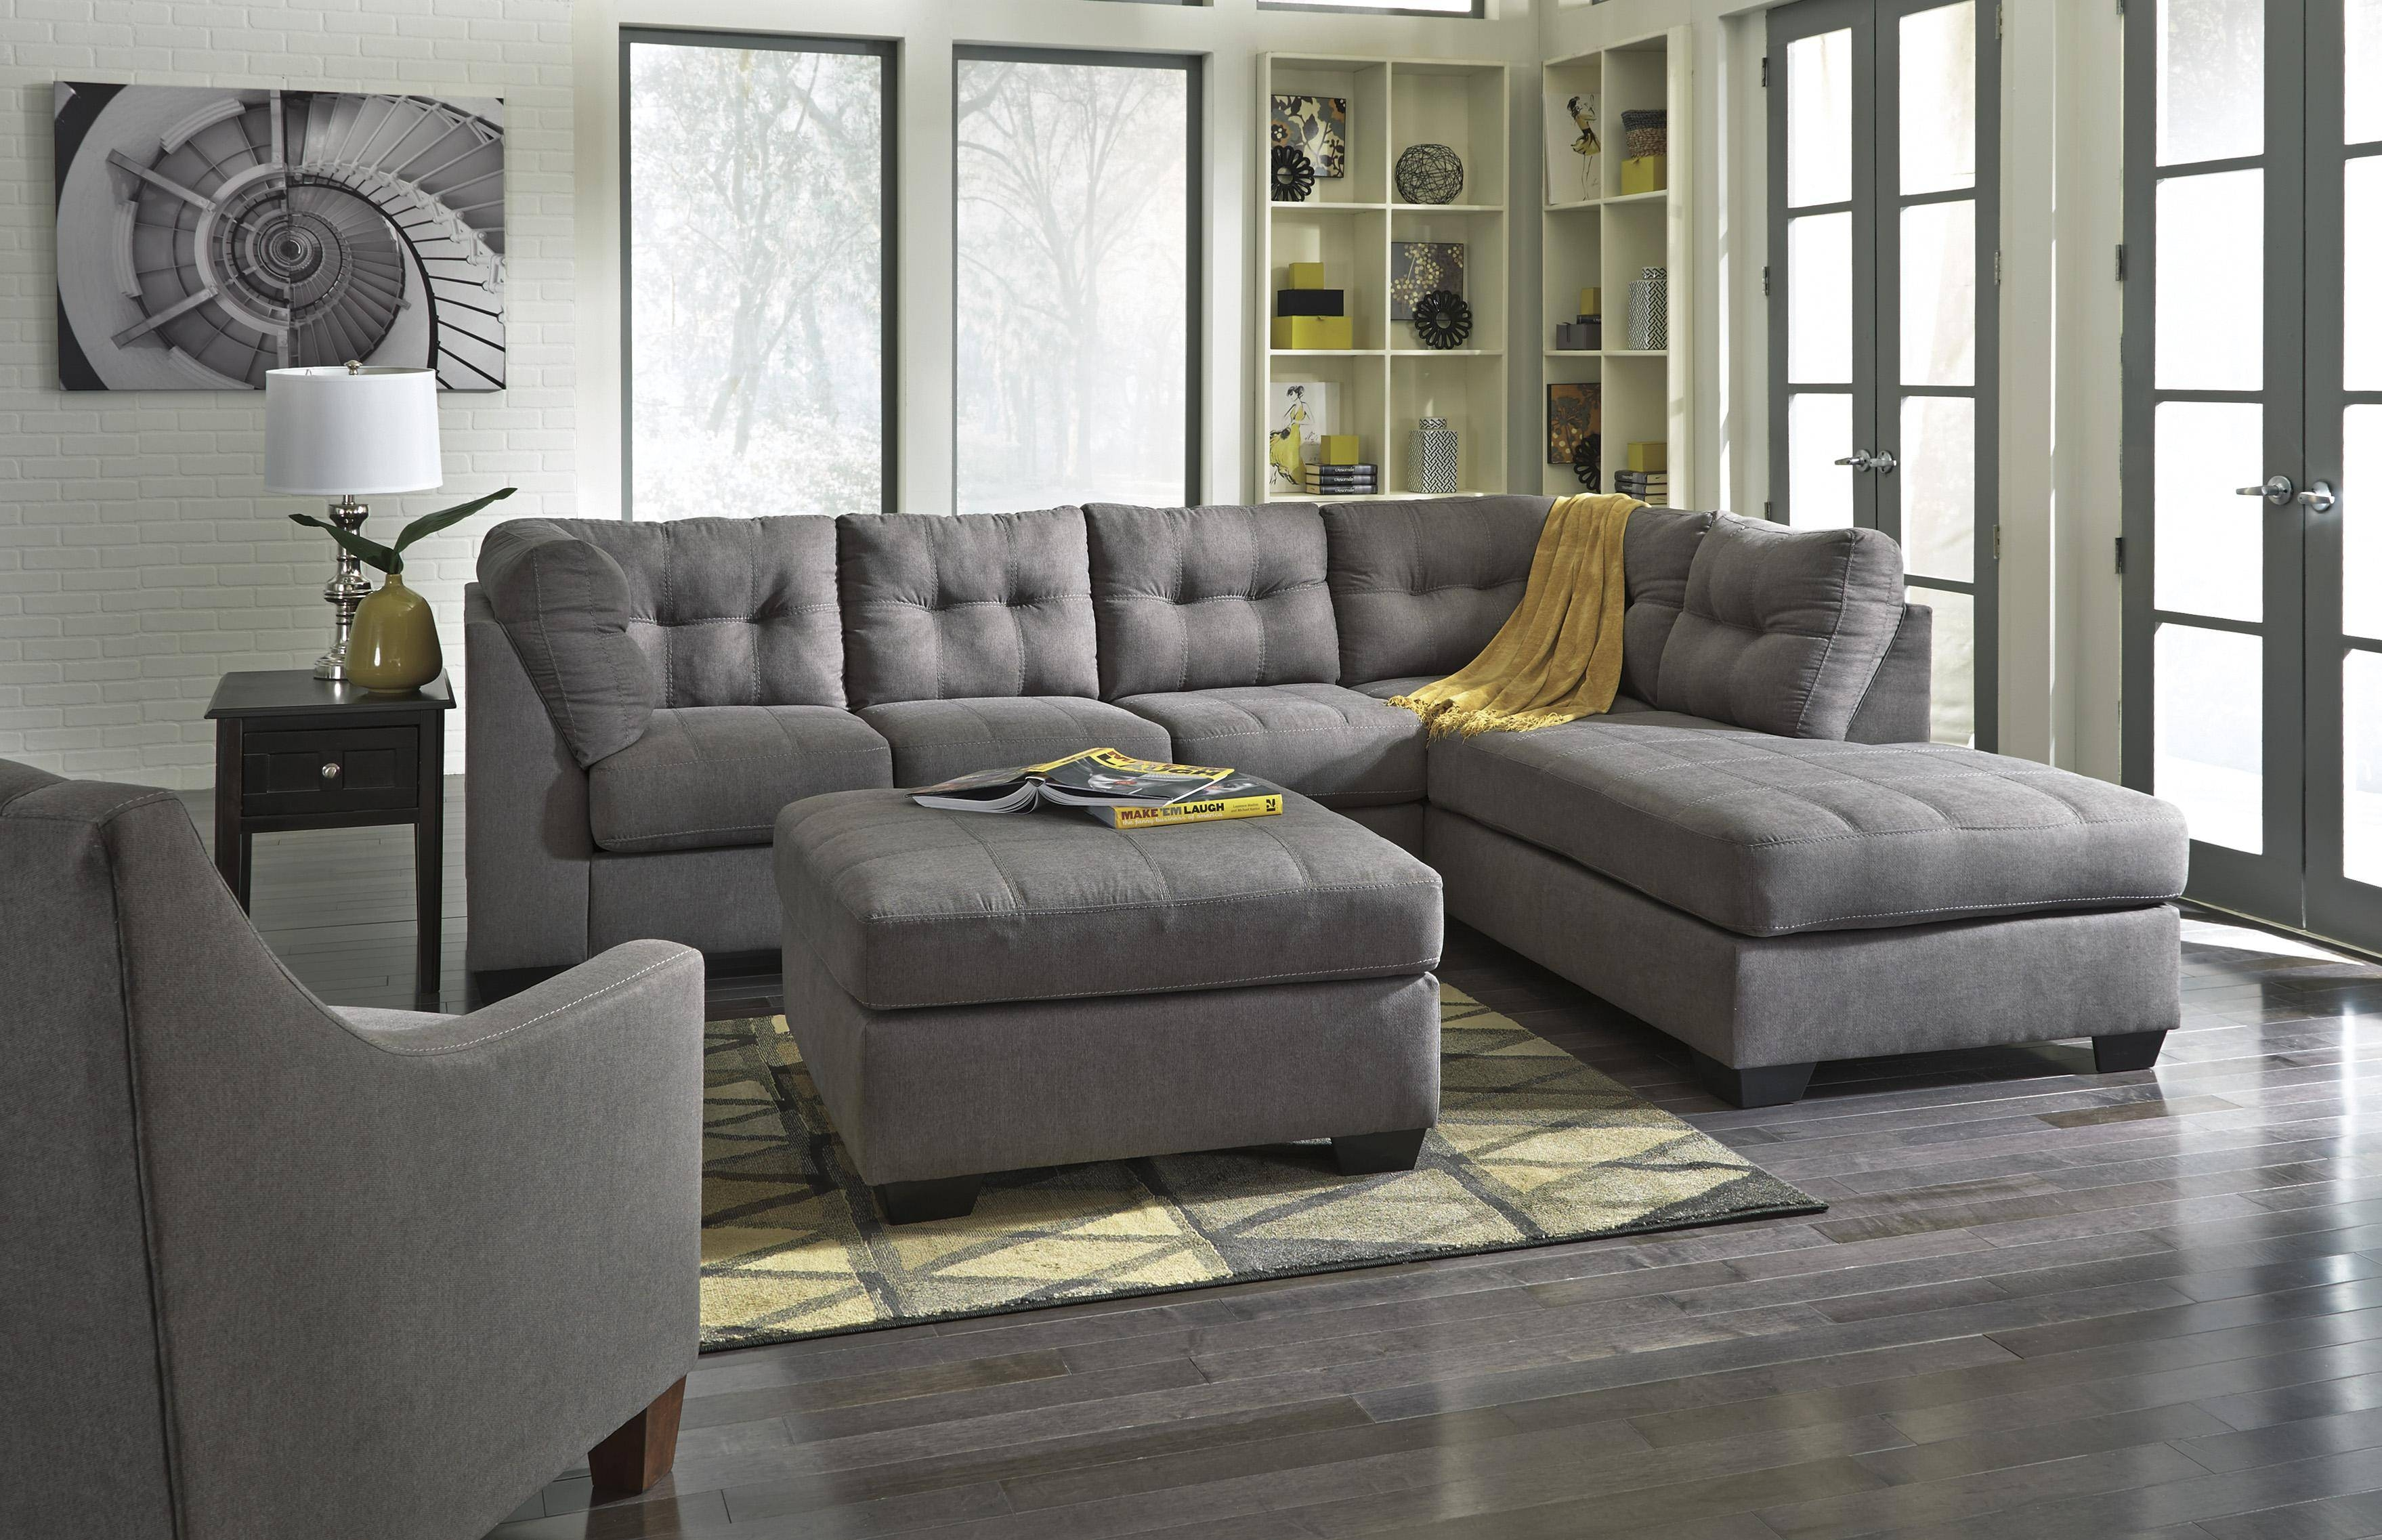 Furniture: Does Ashley Furniture Price Match For Your Style And within Ashley Furniture Brown Corduroy Sectional Sofas (Image 8 of 15)